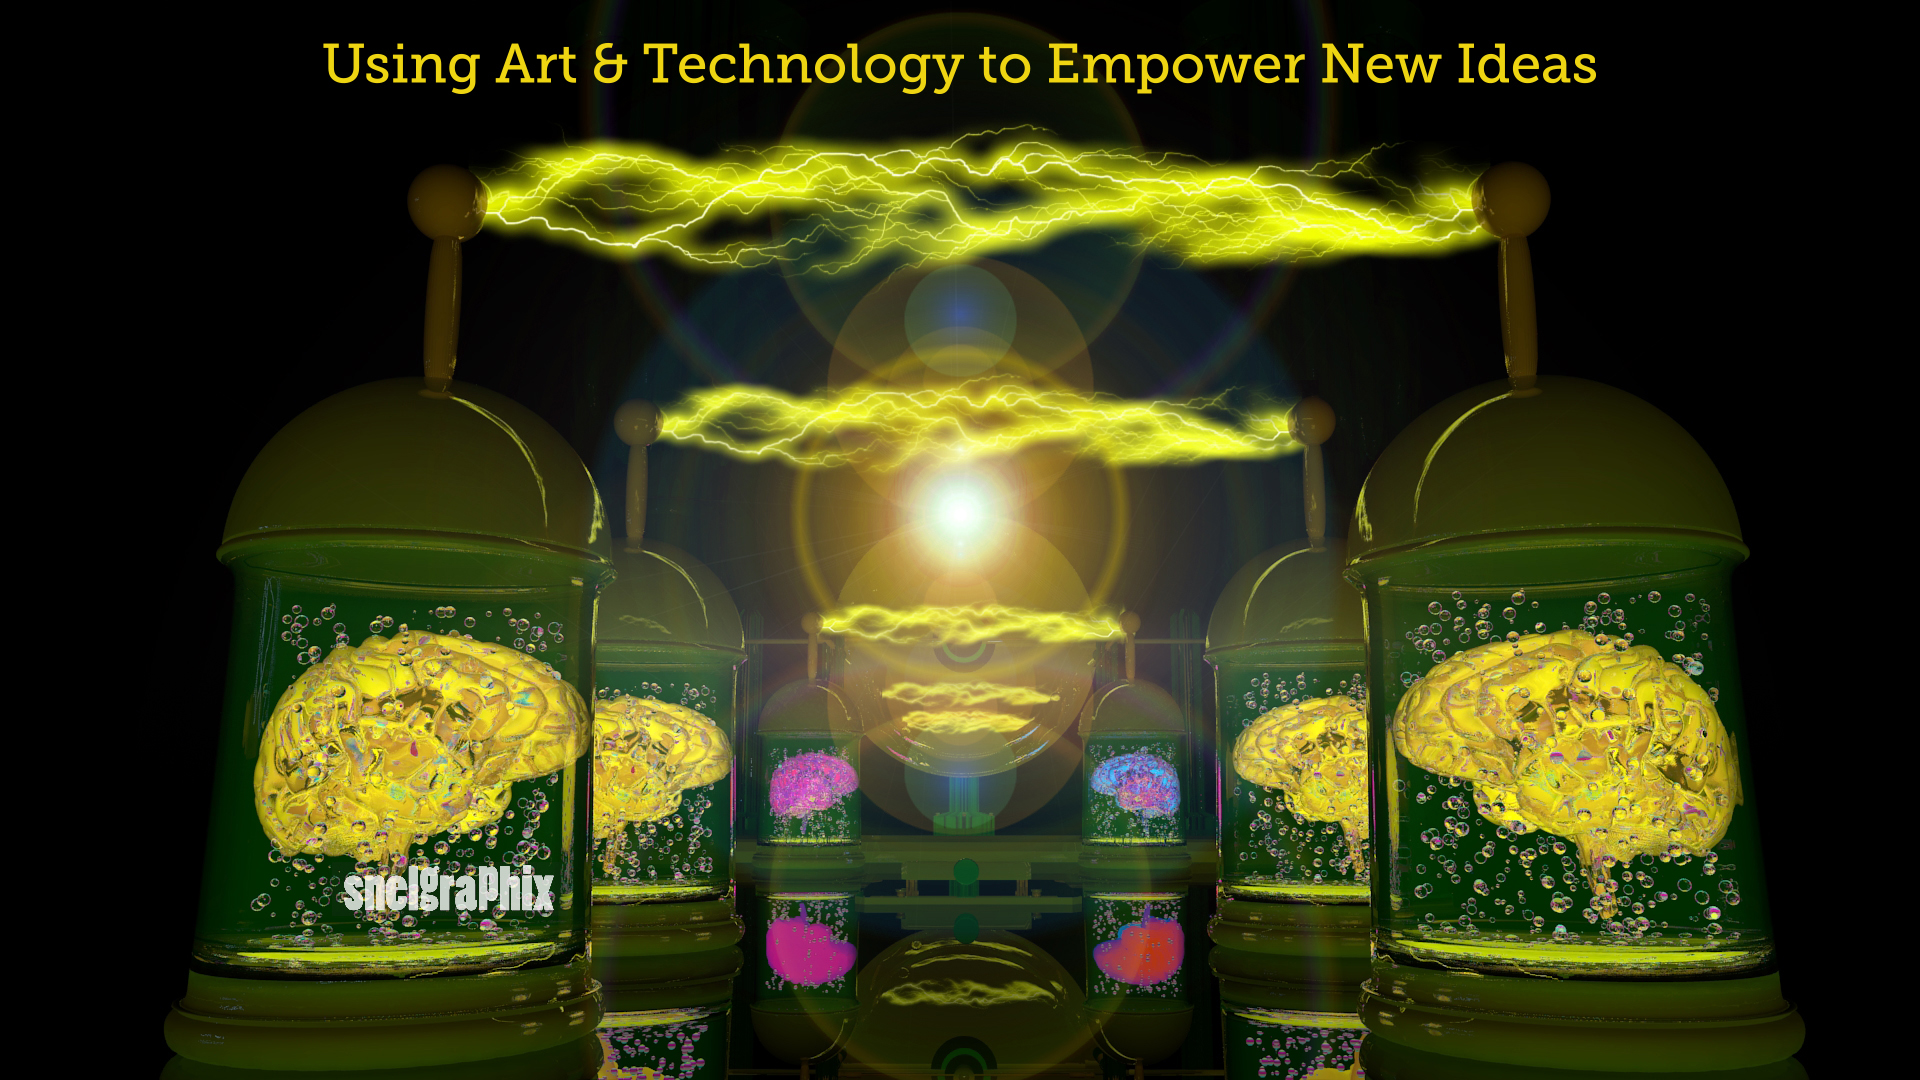 Snelgraphix using art and technology to empower new ideas.